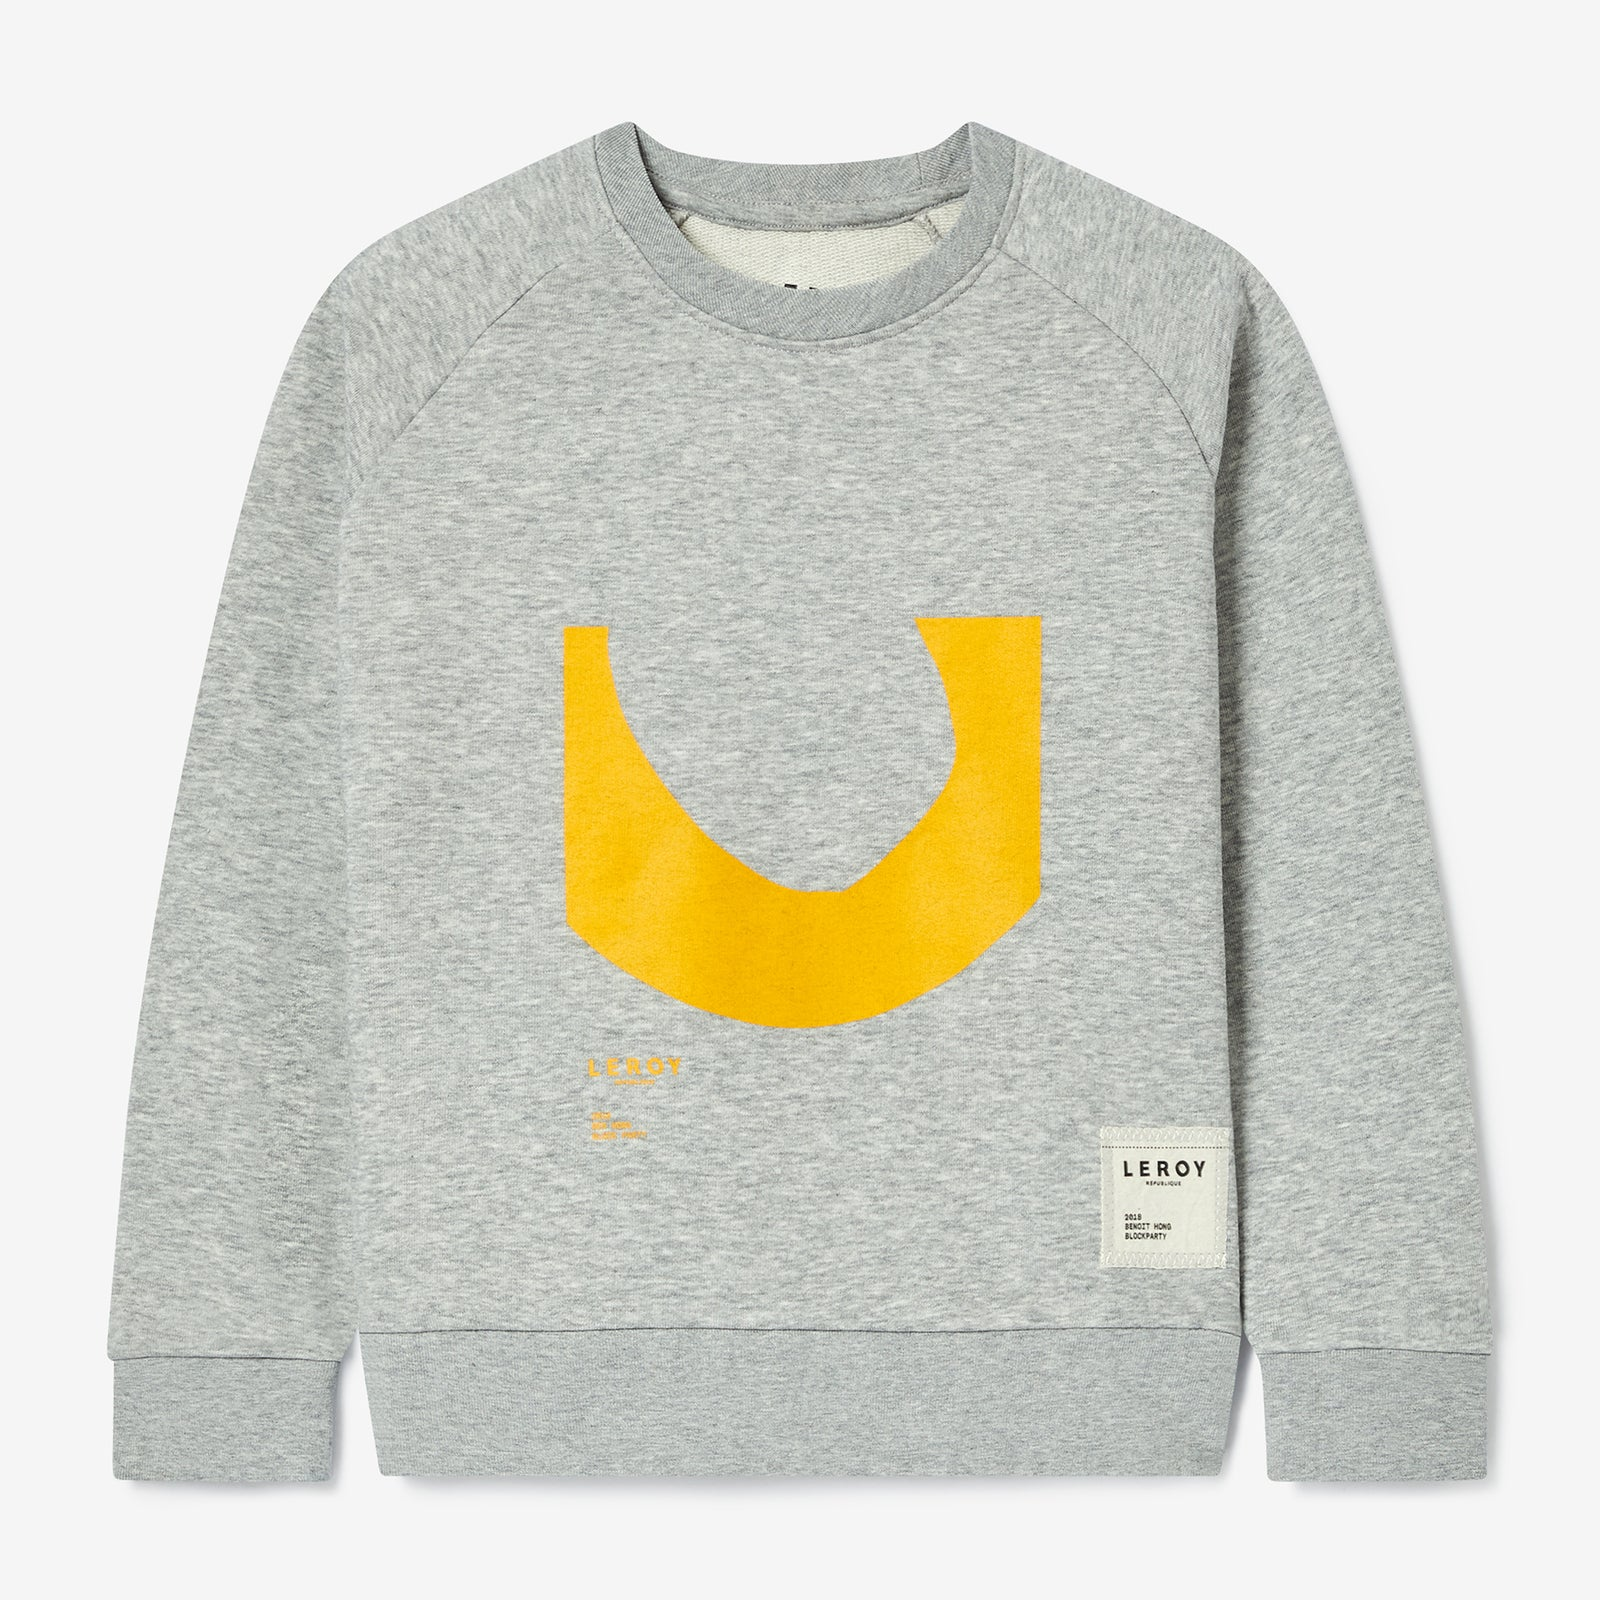 Ditch kid crew neck